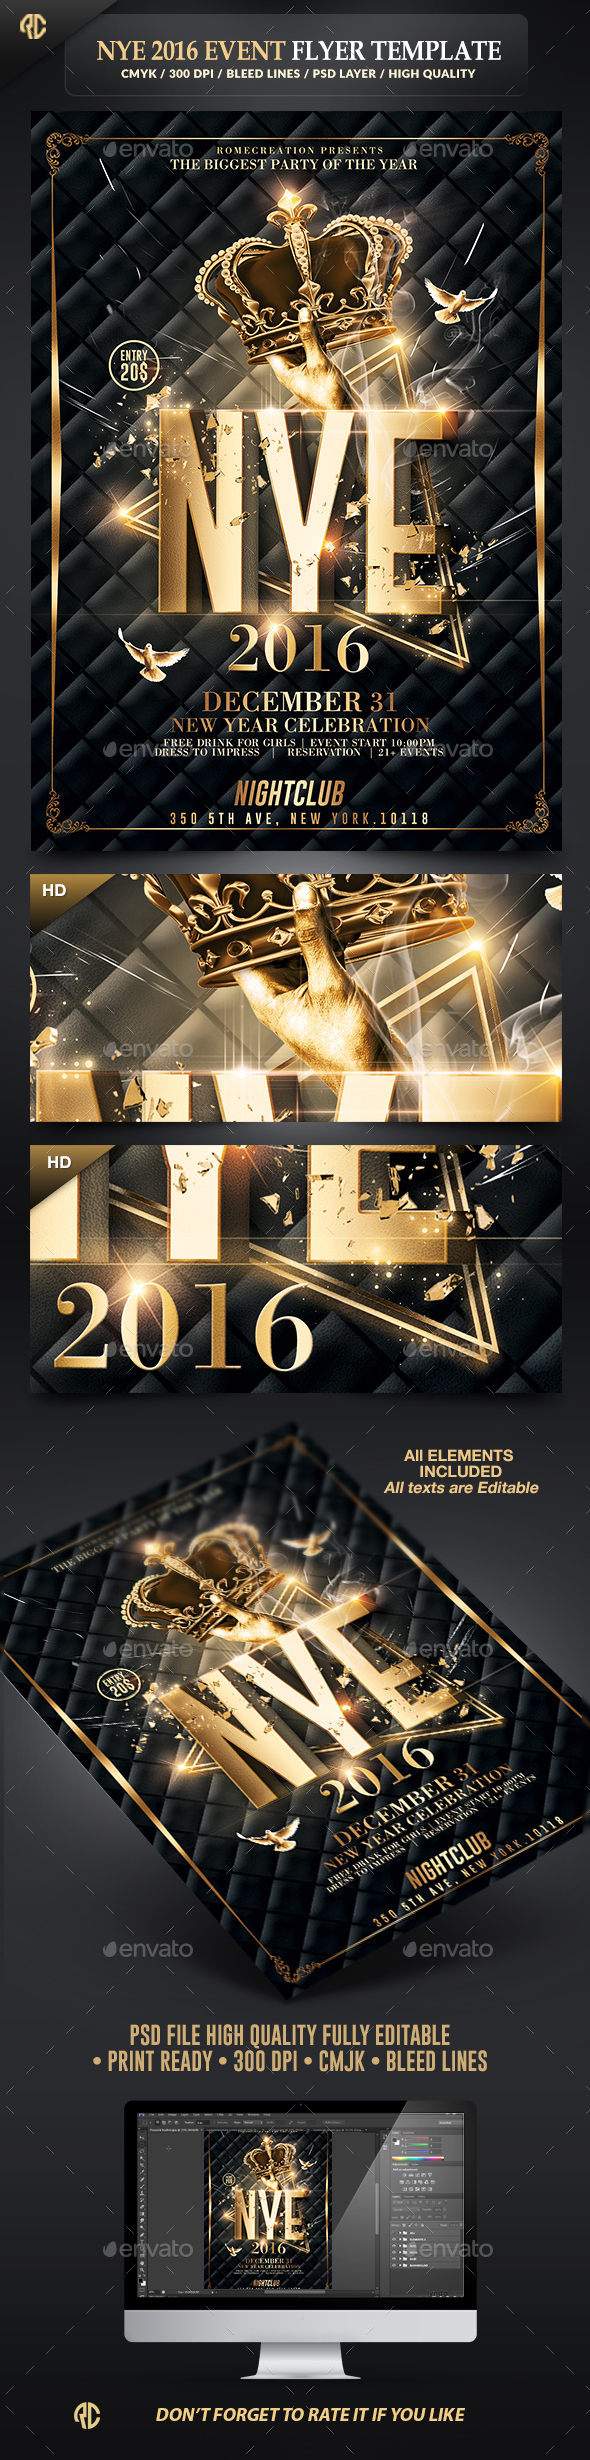 New Year Party | Classy Flyer Template - Events Flyers